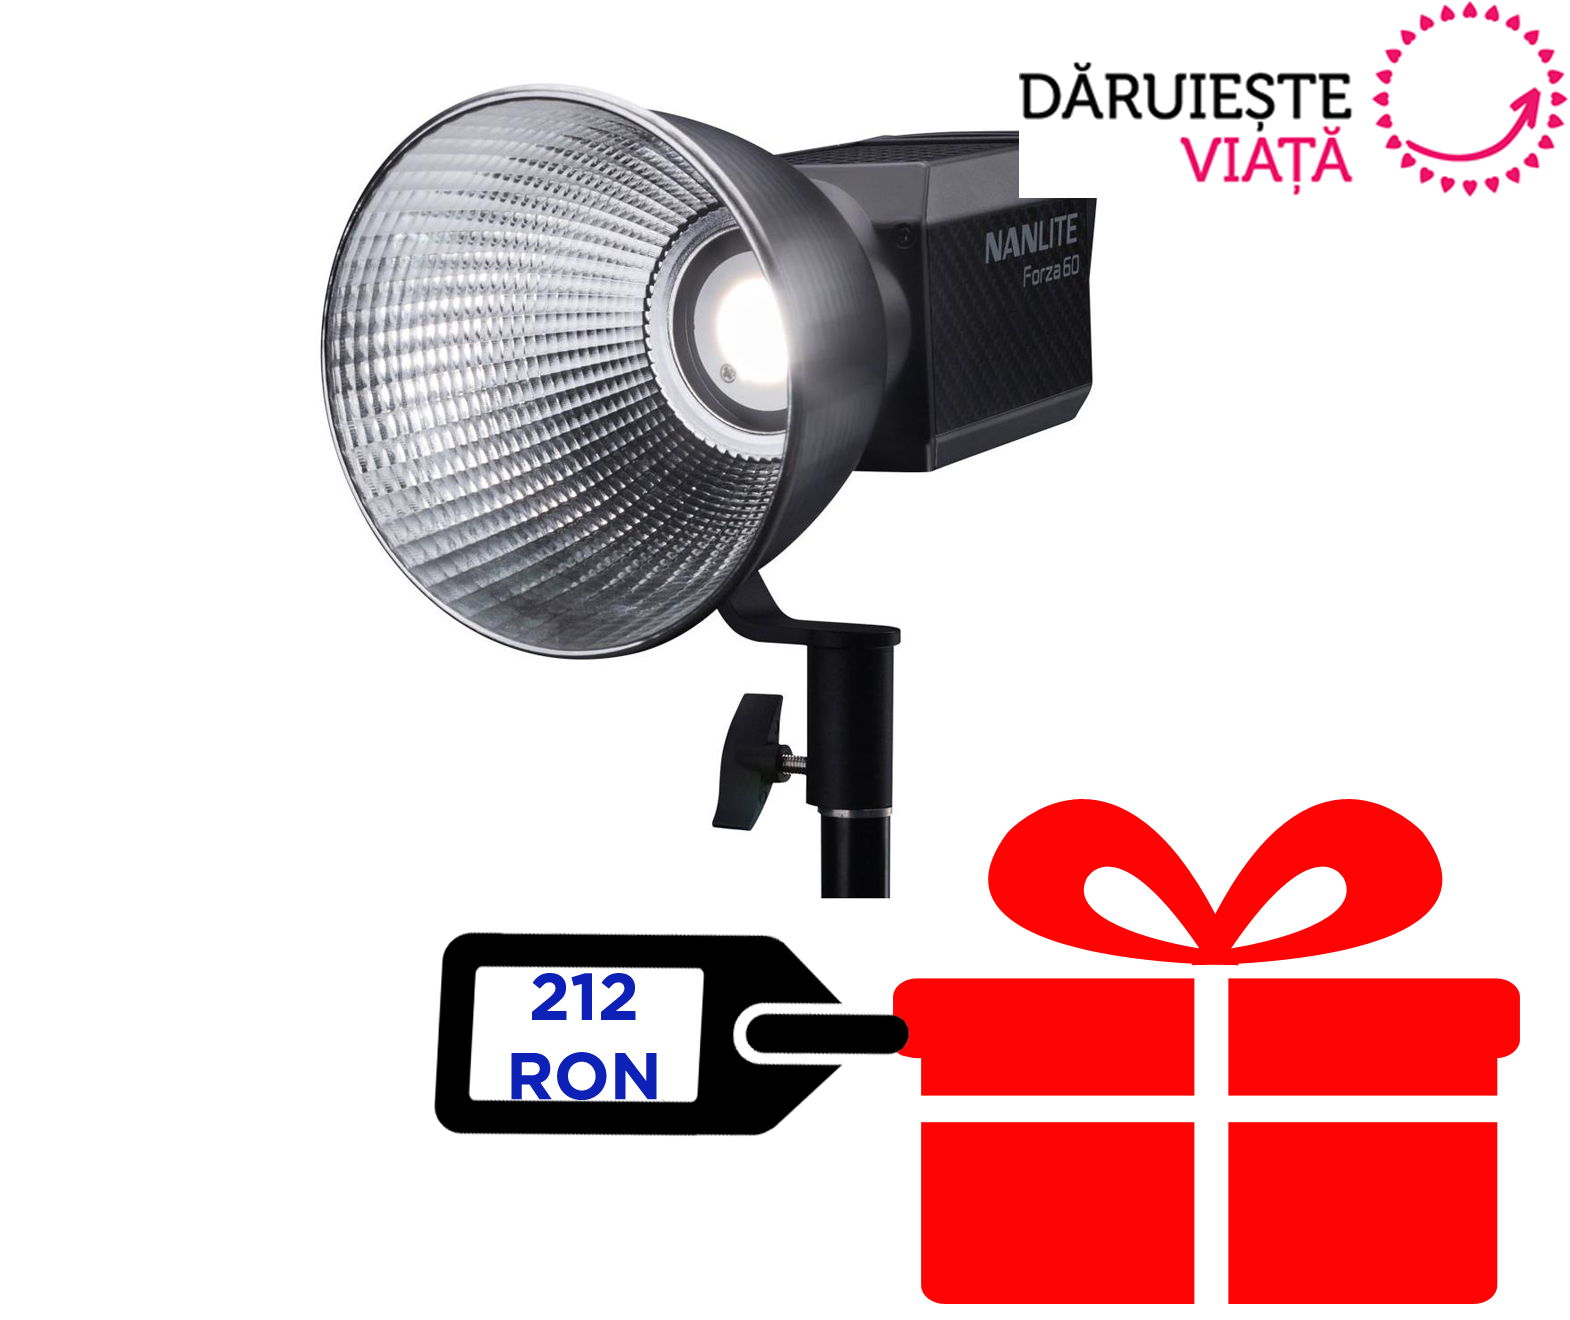 Nanlite Forza 60 LED Monolight 11950 LUX